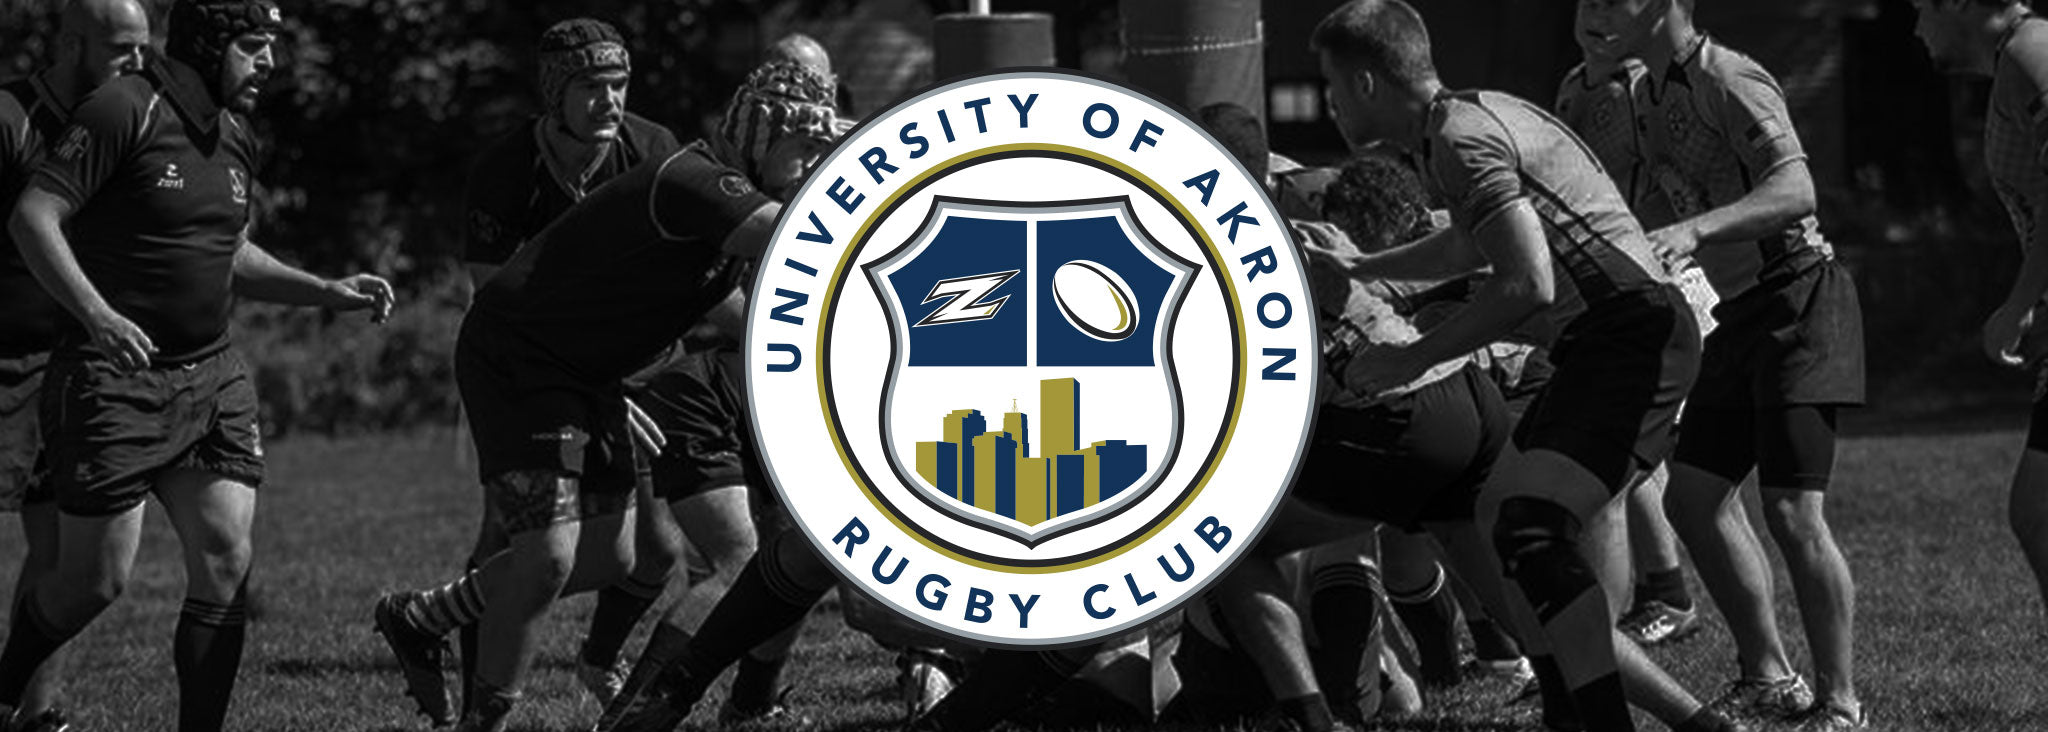 Of Akron Men's Rugby Club